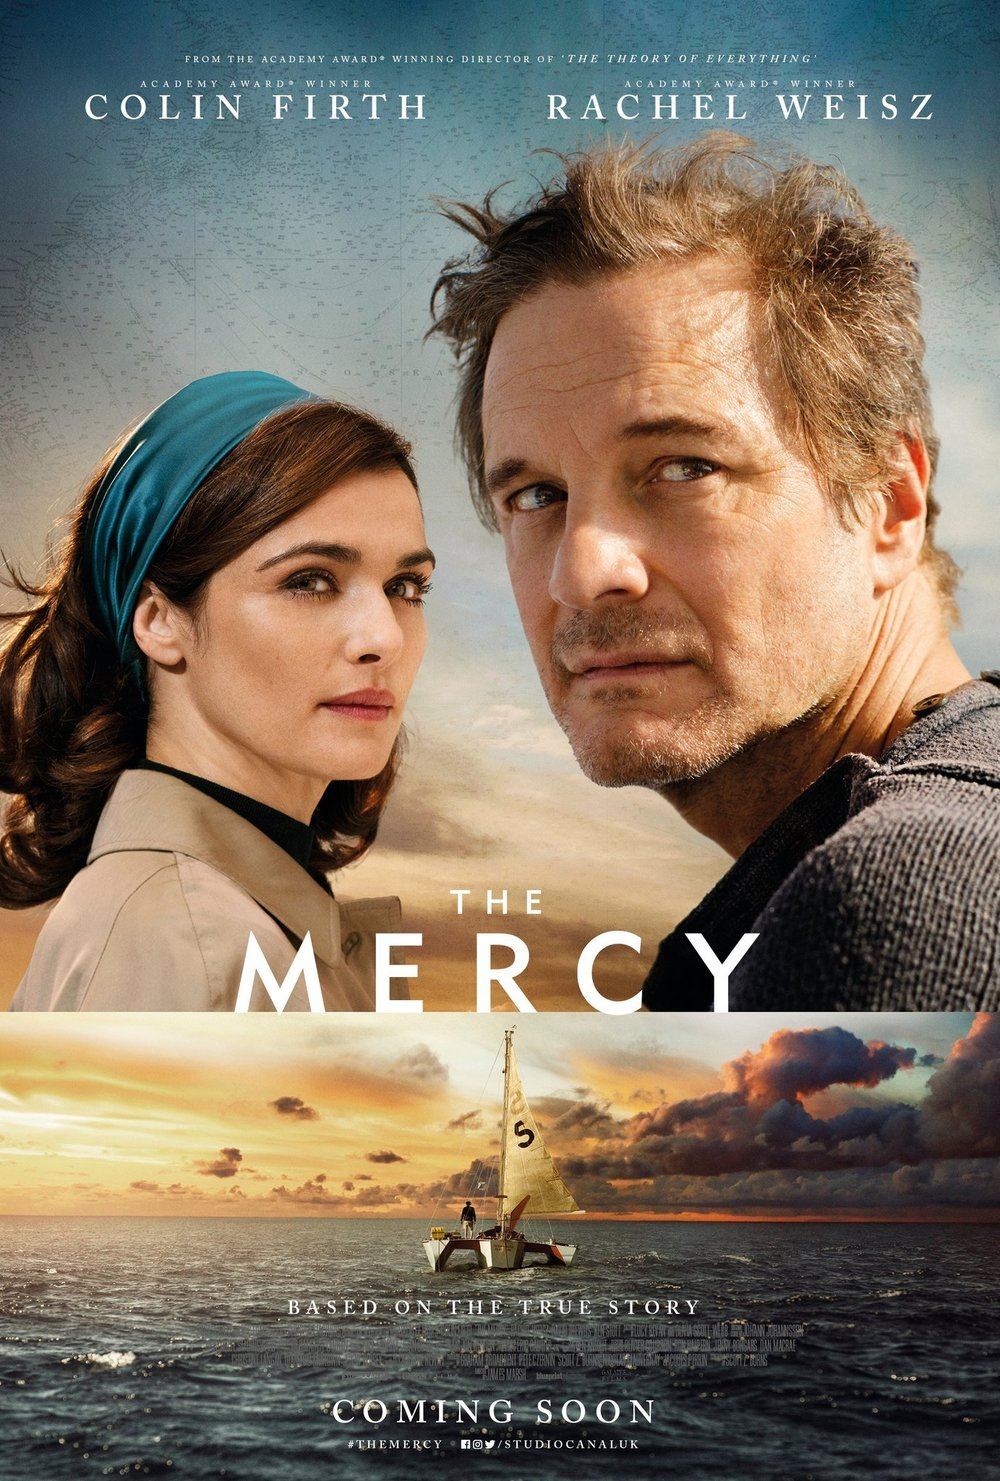 Ther-Mercy-movie-poster.jpg